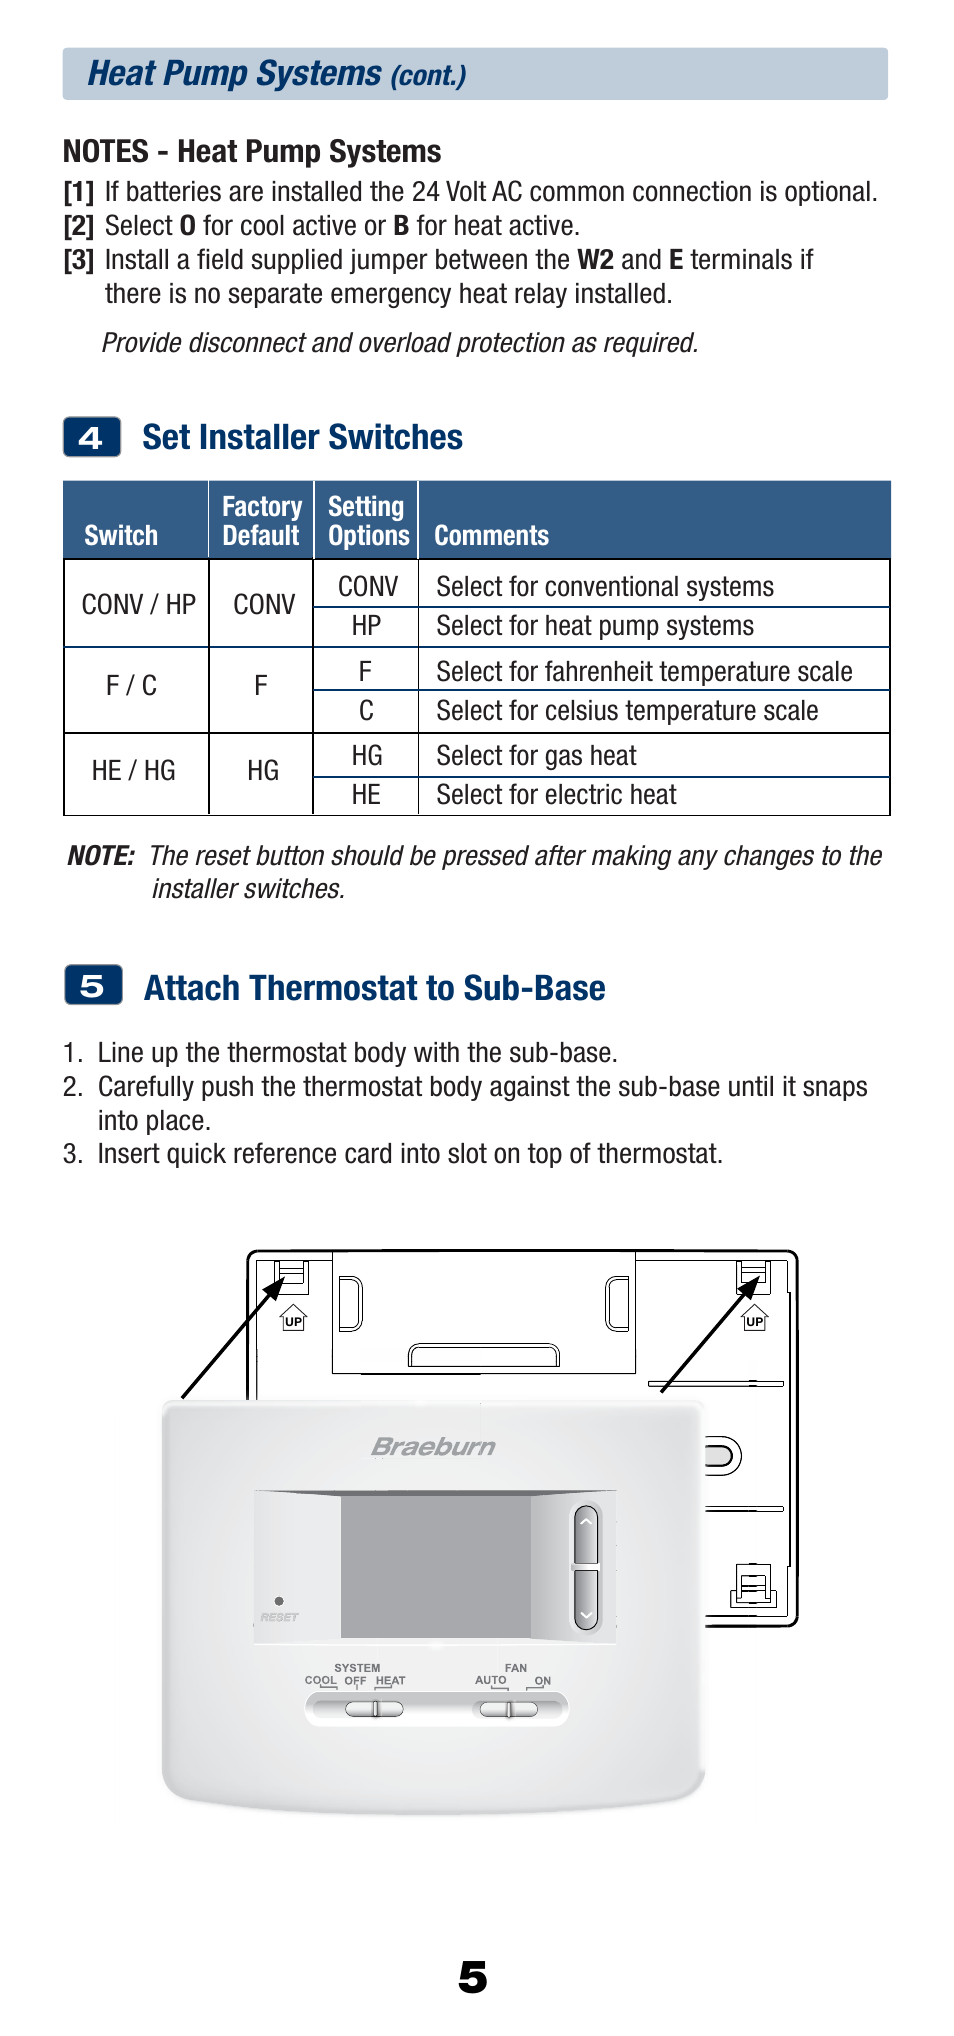 heat pump systems, set installer switches, attach thermostat to sub-base |  braeburn 1220nc user manual | page 6 / 10